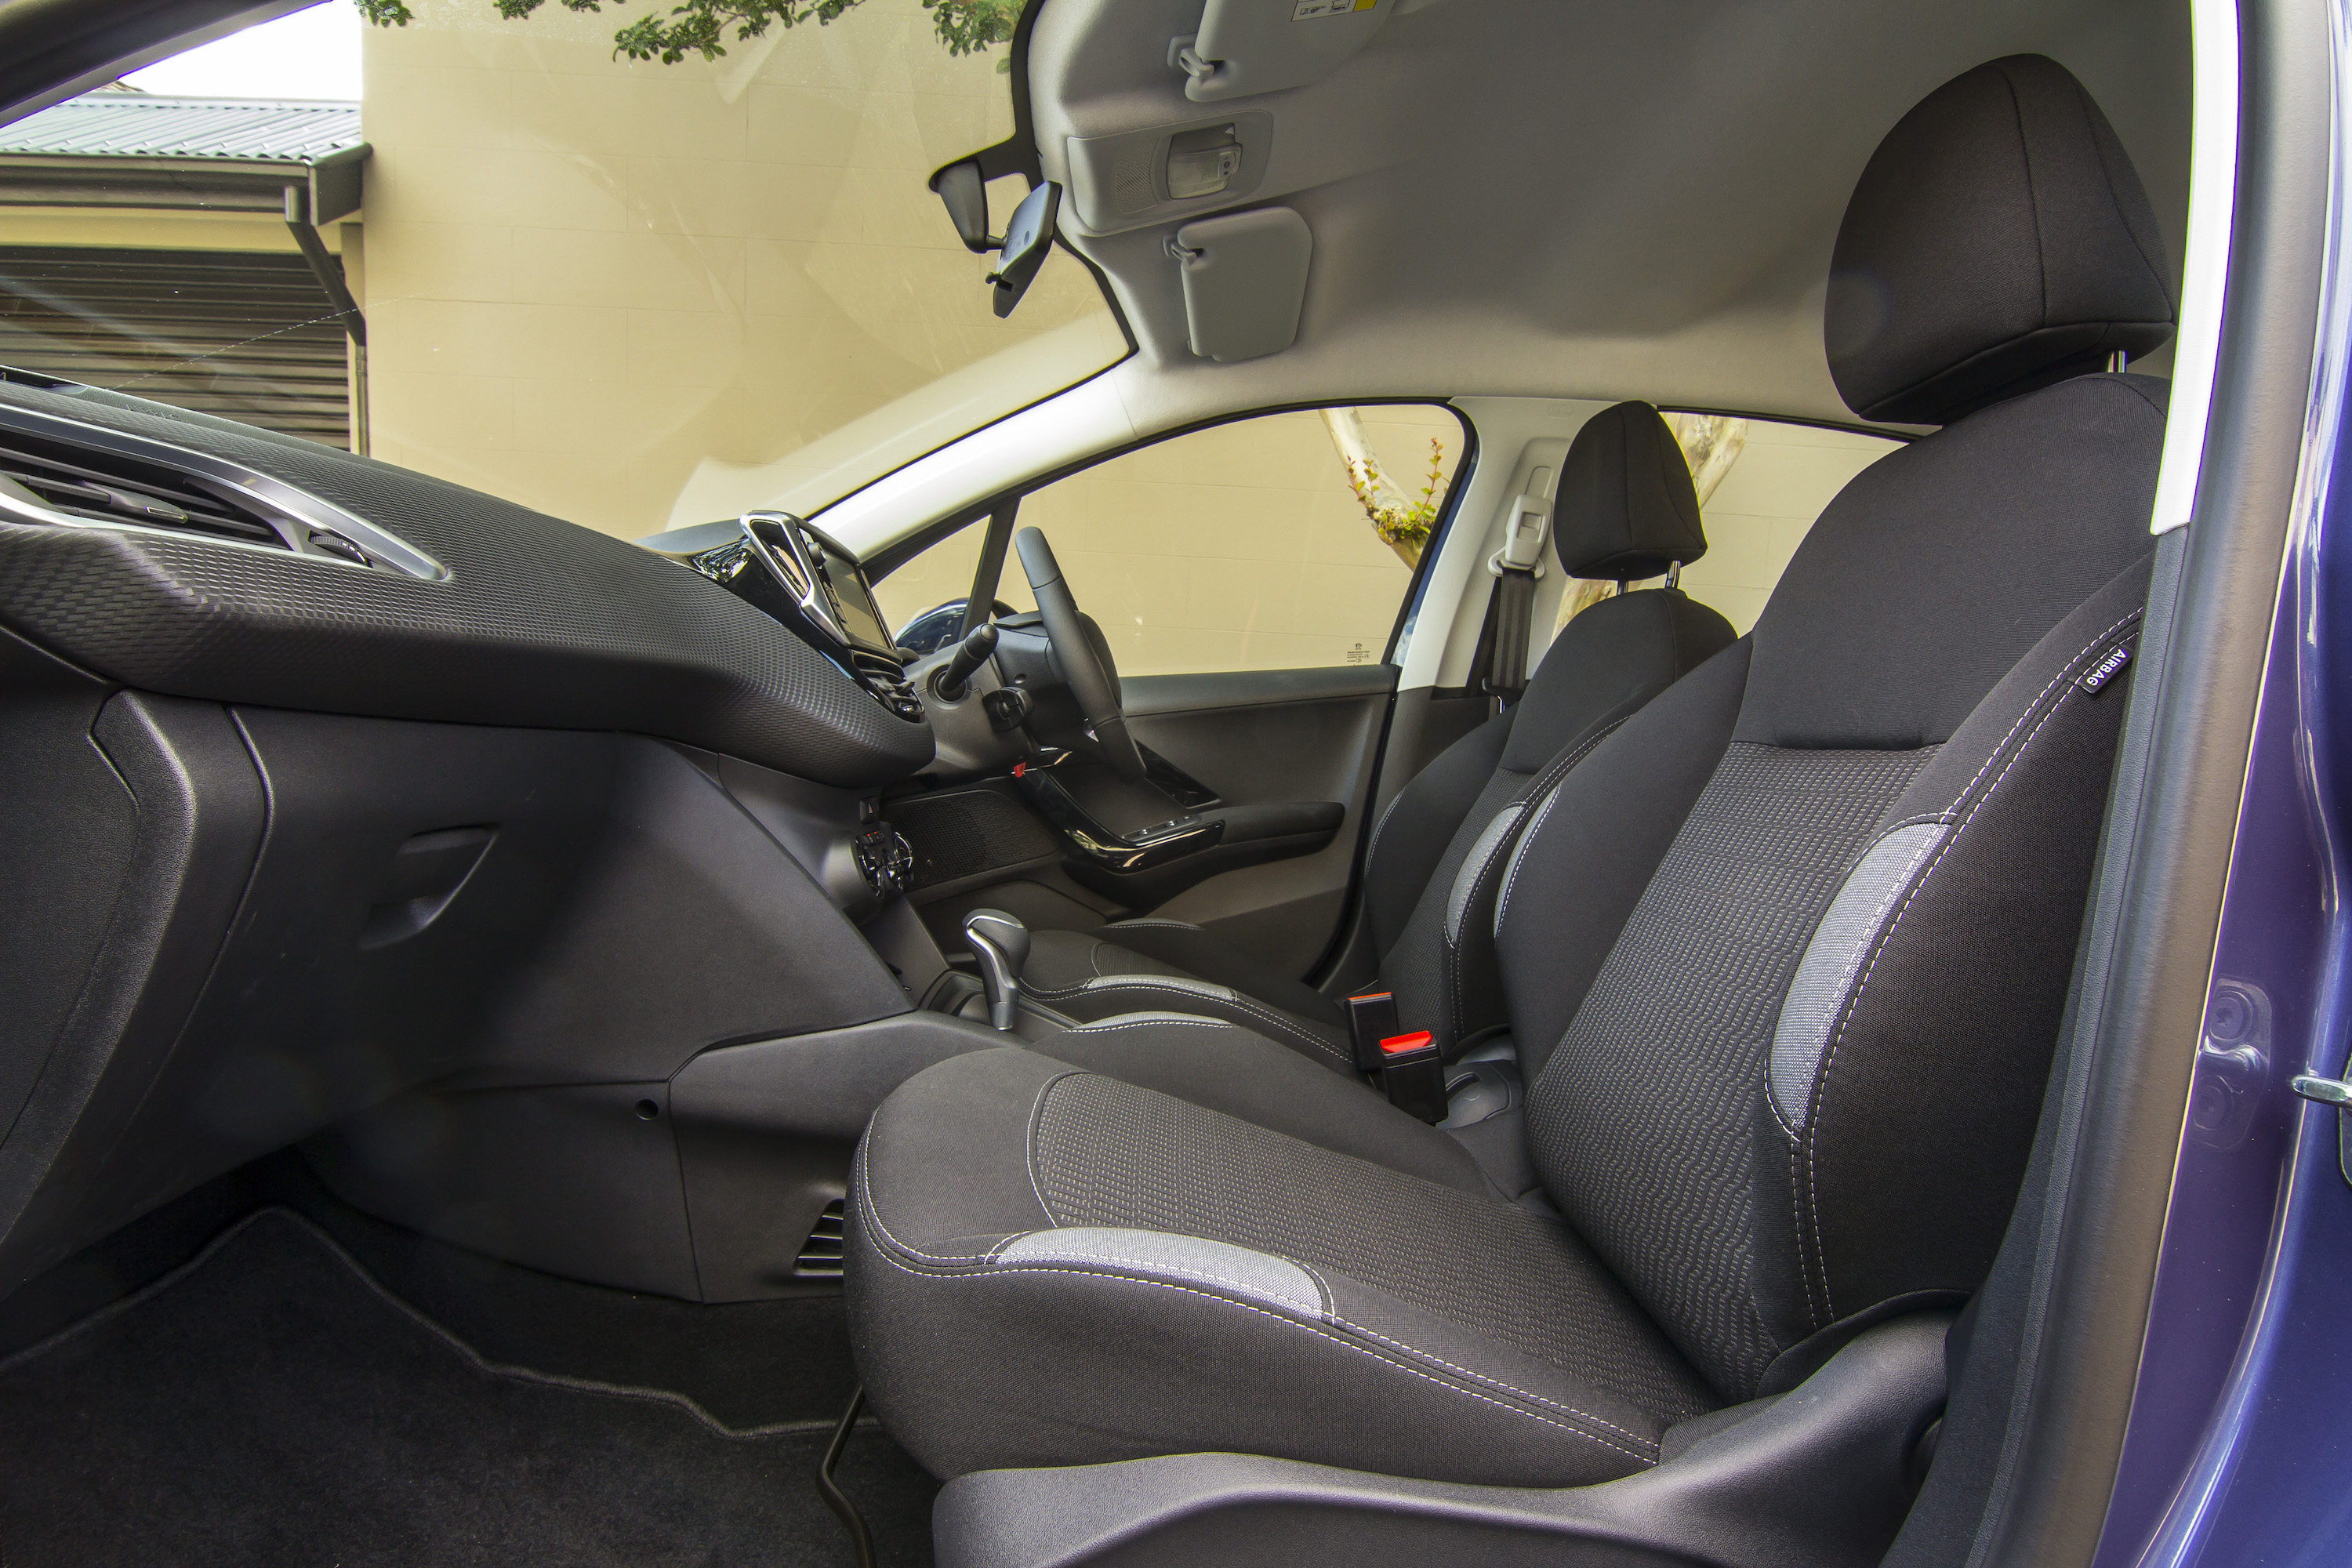 2016 Peugeot 208 Active Front Seats Interior (Photo 4 of 16)